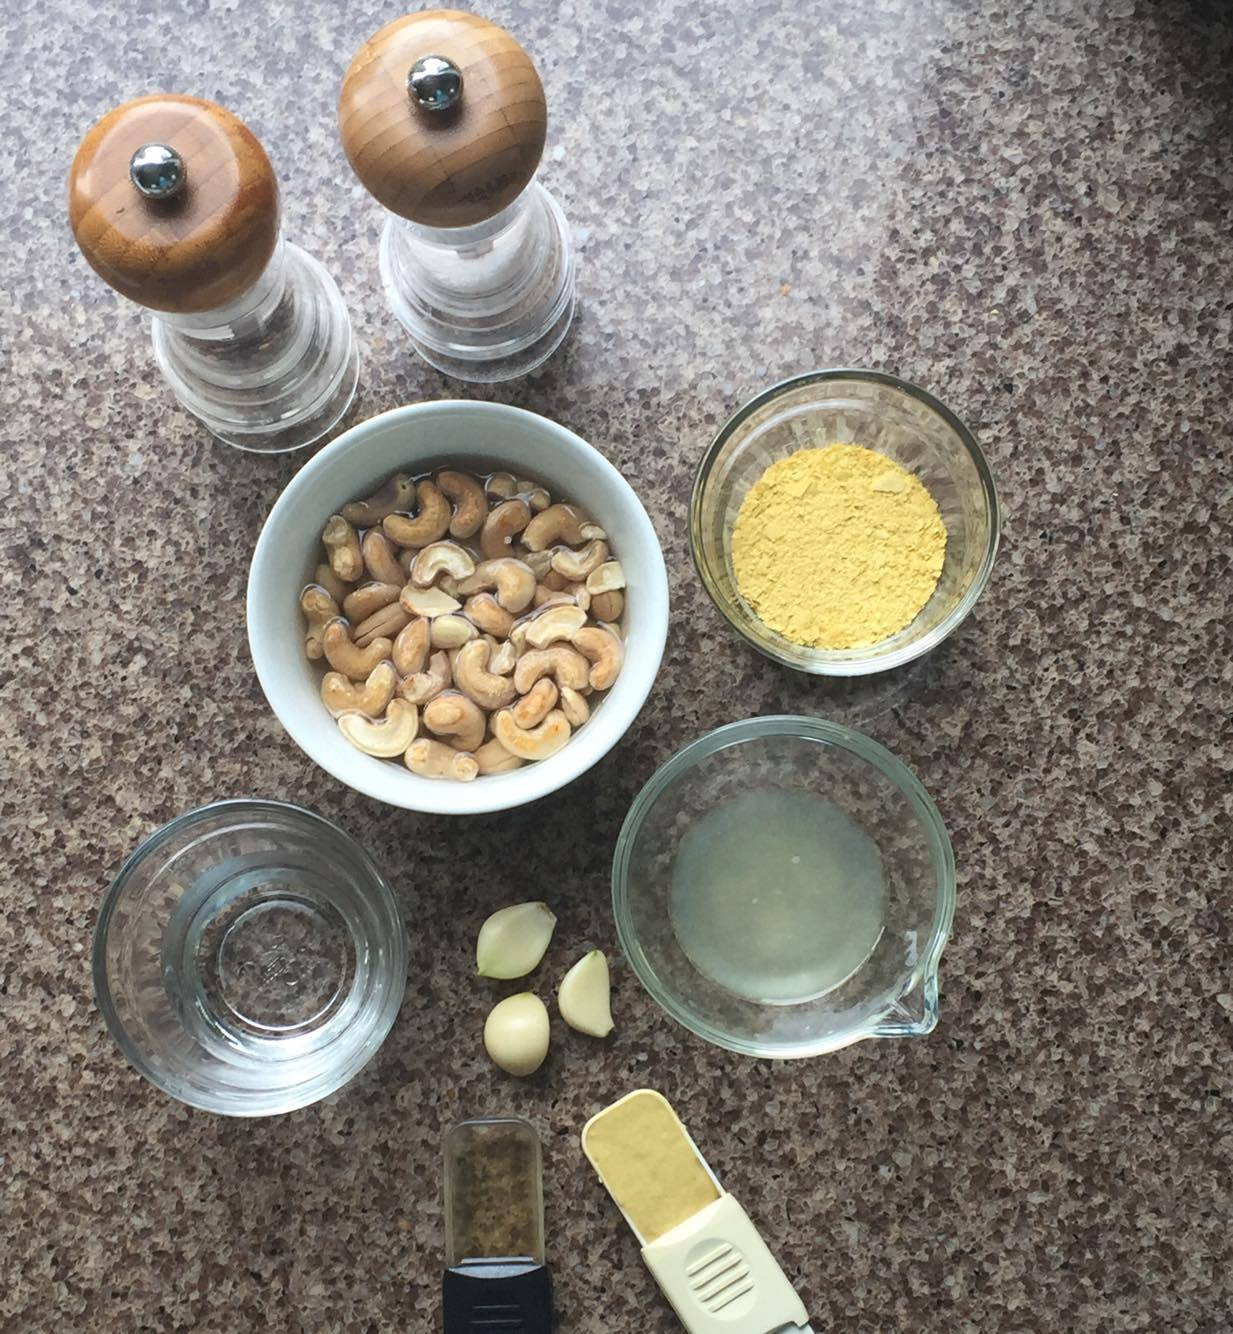 Looking for a vegan or vegetarian cheese option? Check out this great recipe for Cashew Cheese.